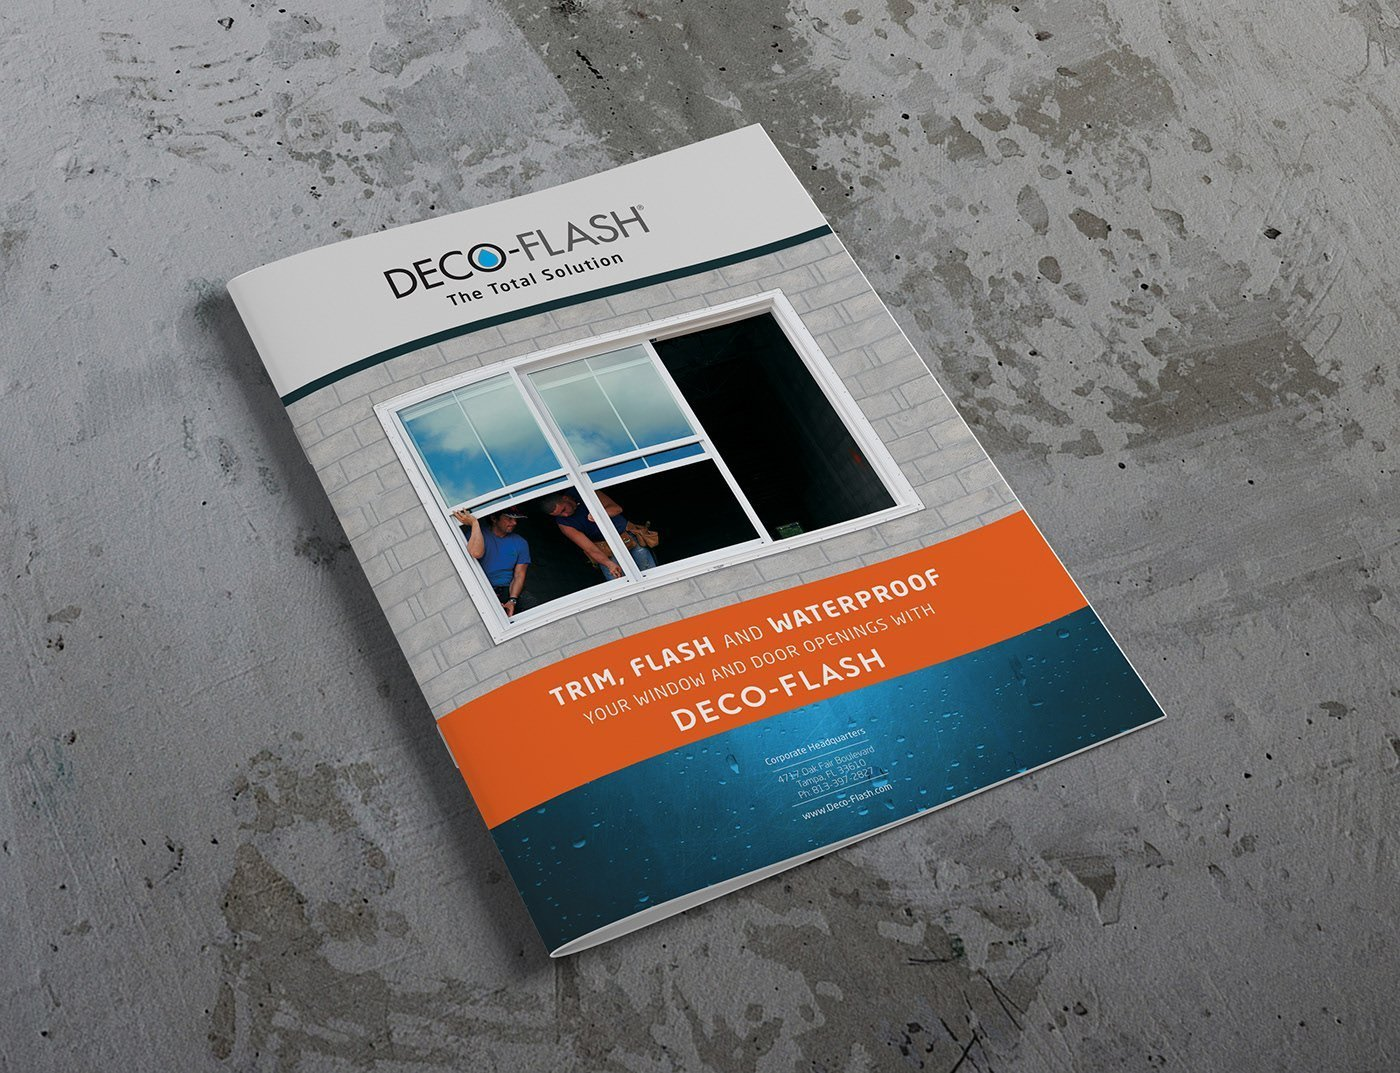 Deco-Flash - Product Brochure cover